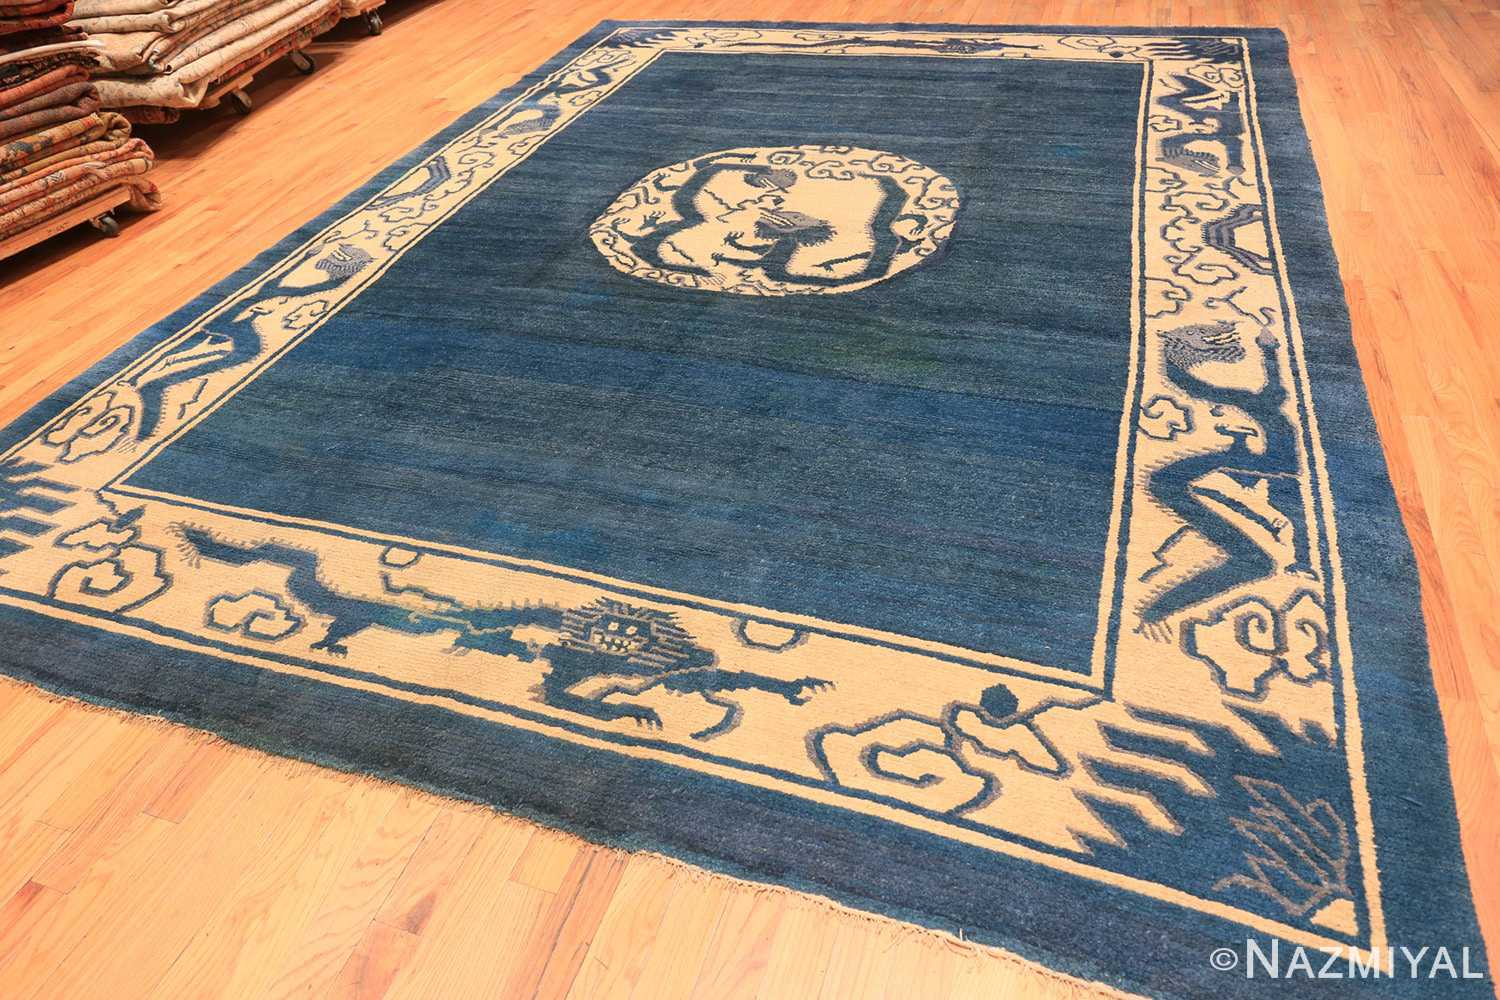 301 Moved Permanently |Mongol Rug